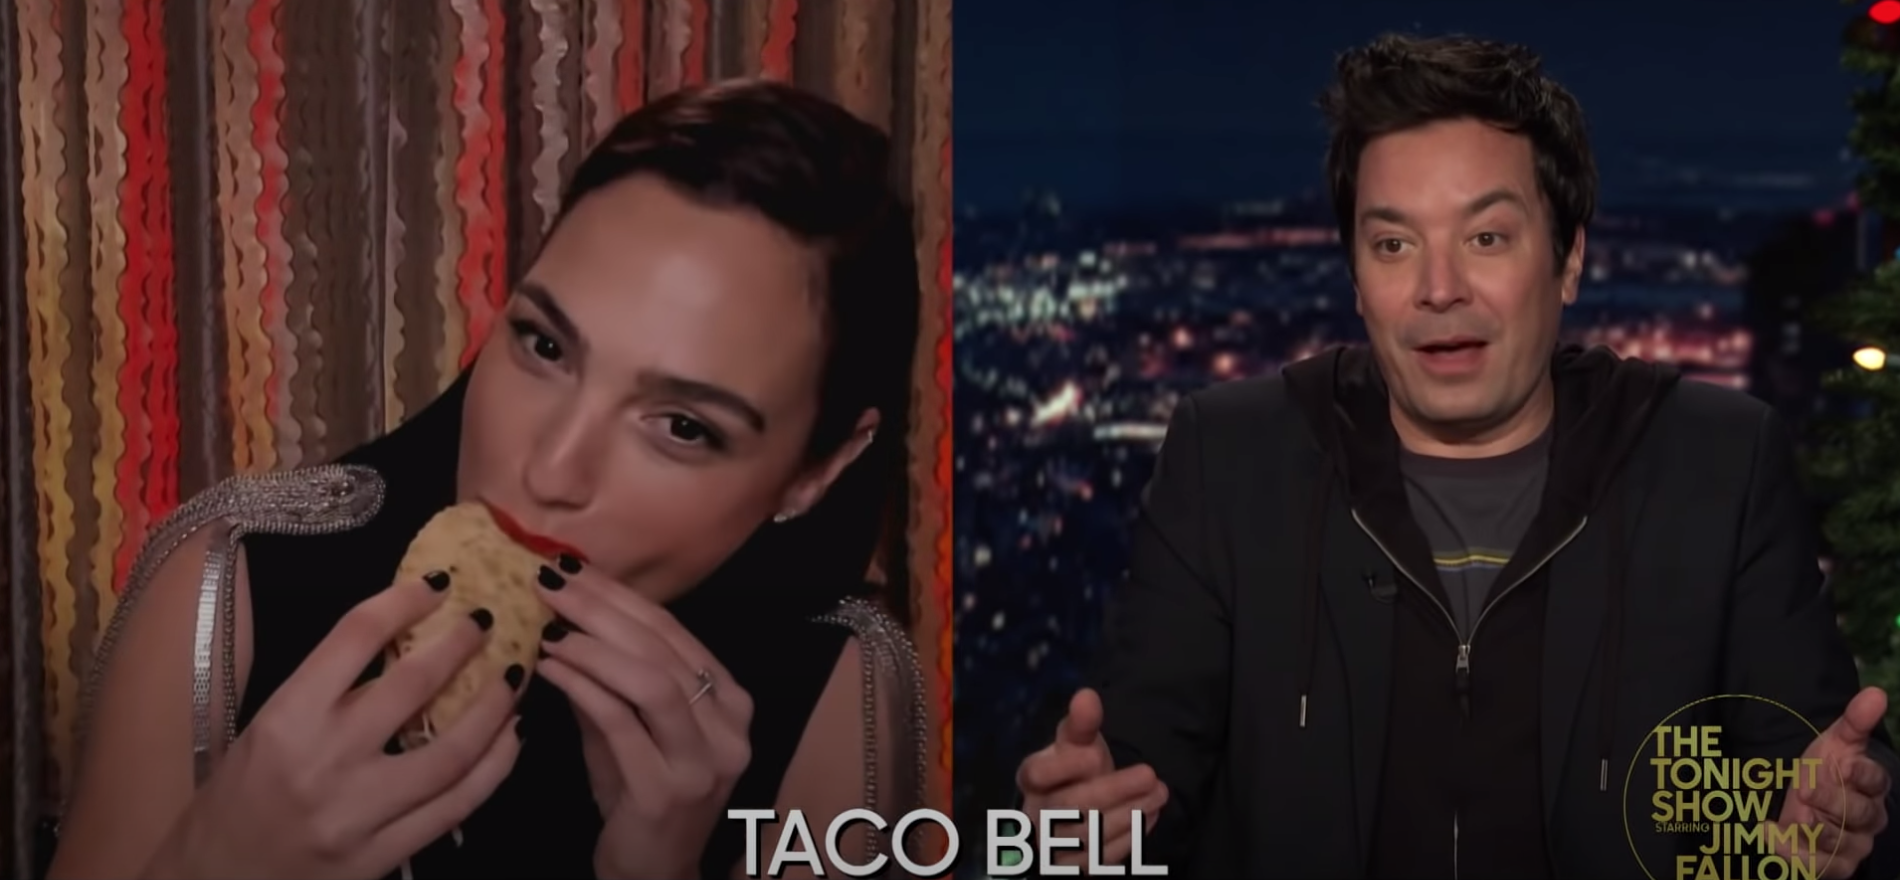 Gal Gadot takes her first bite out of the Taco Bell taco as Jimmy Fallon waits with anticipation